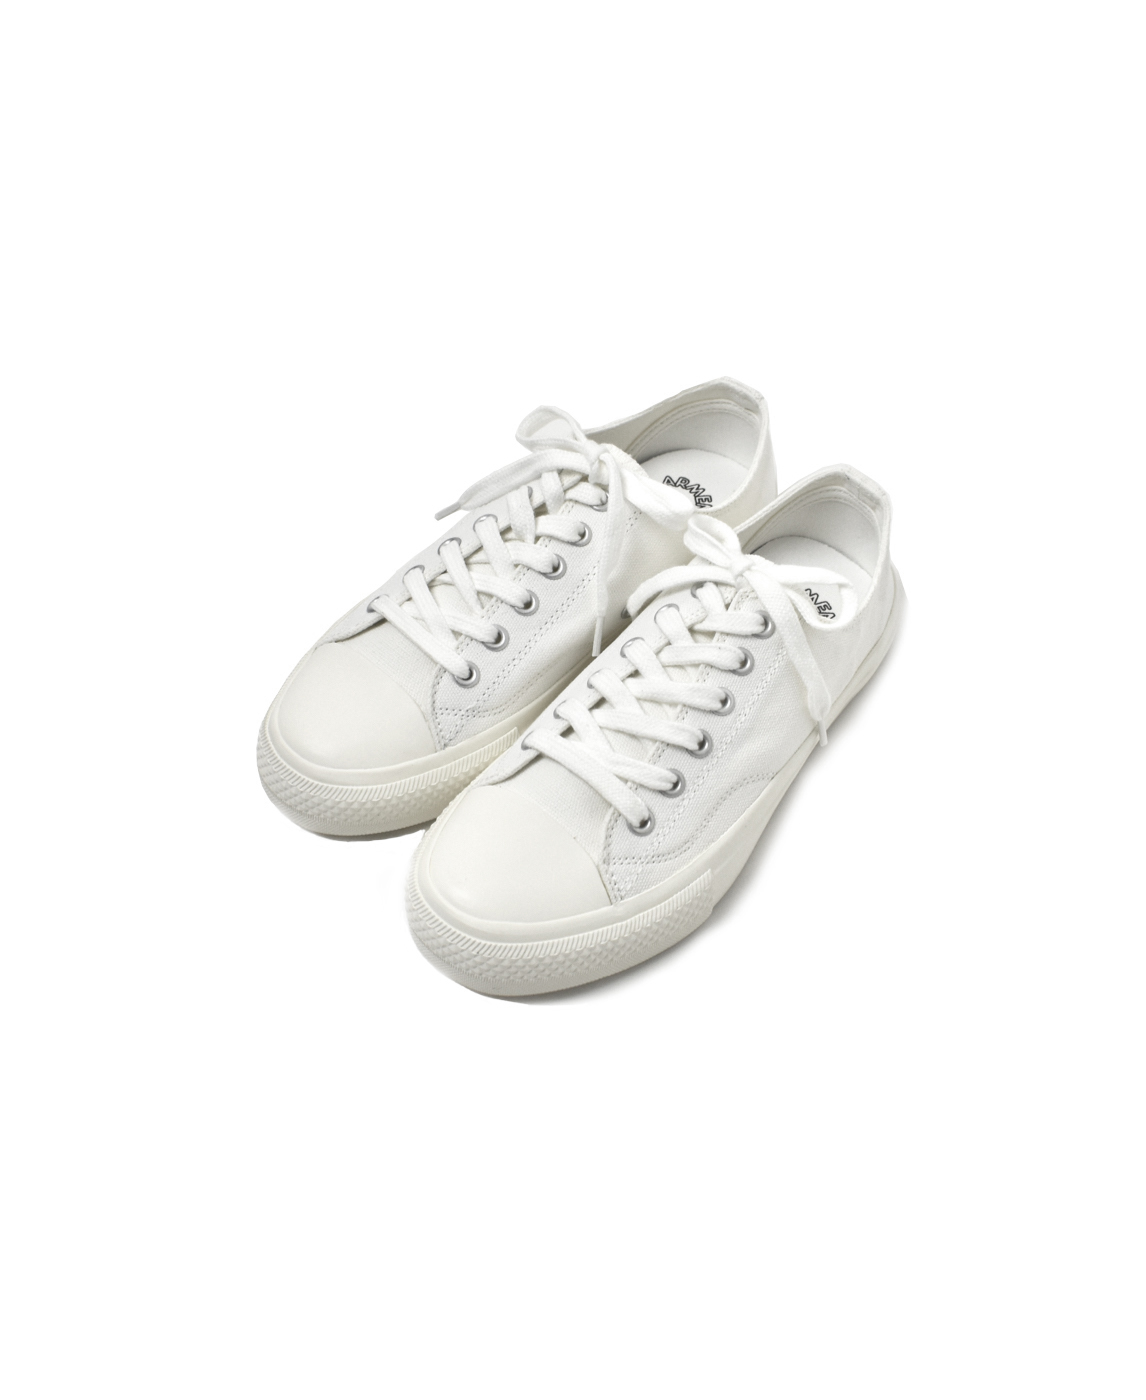 NAMC0701 LOW-CUT CANVAS SNEAKER